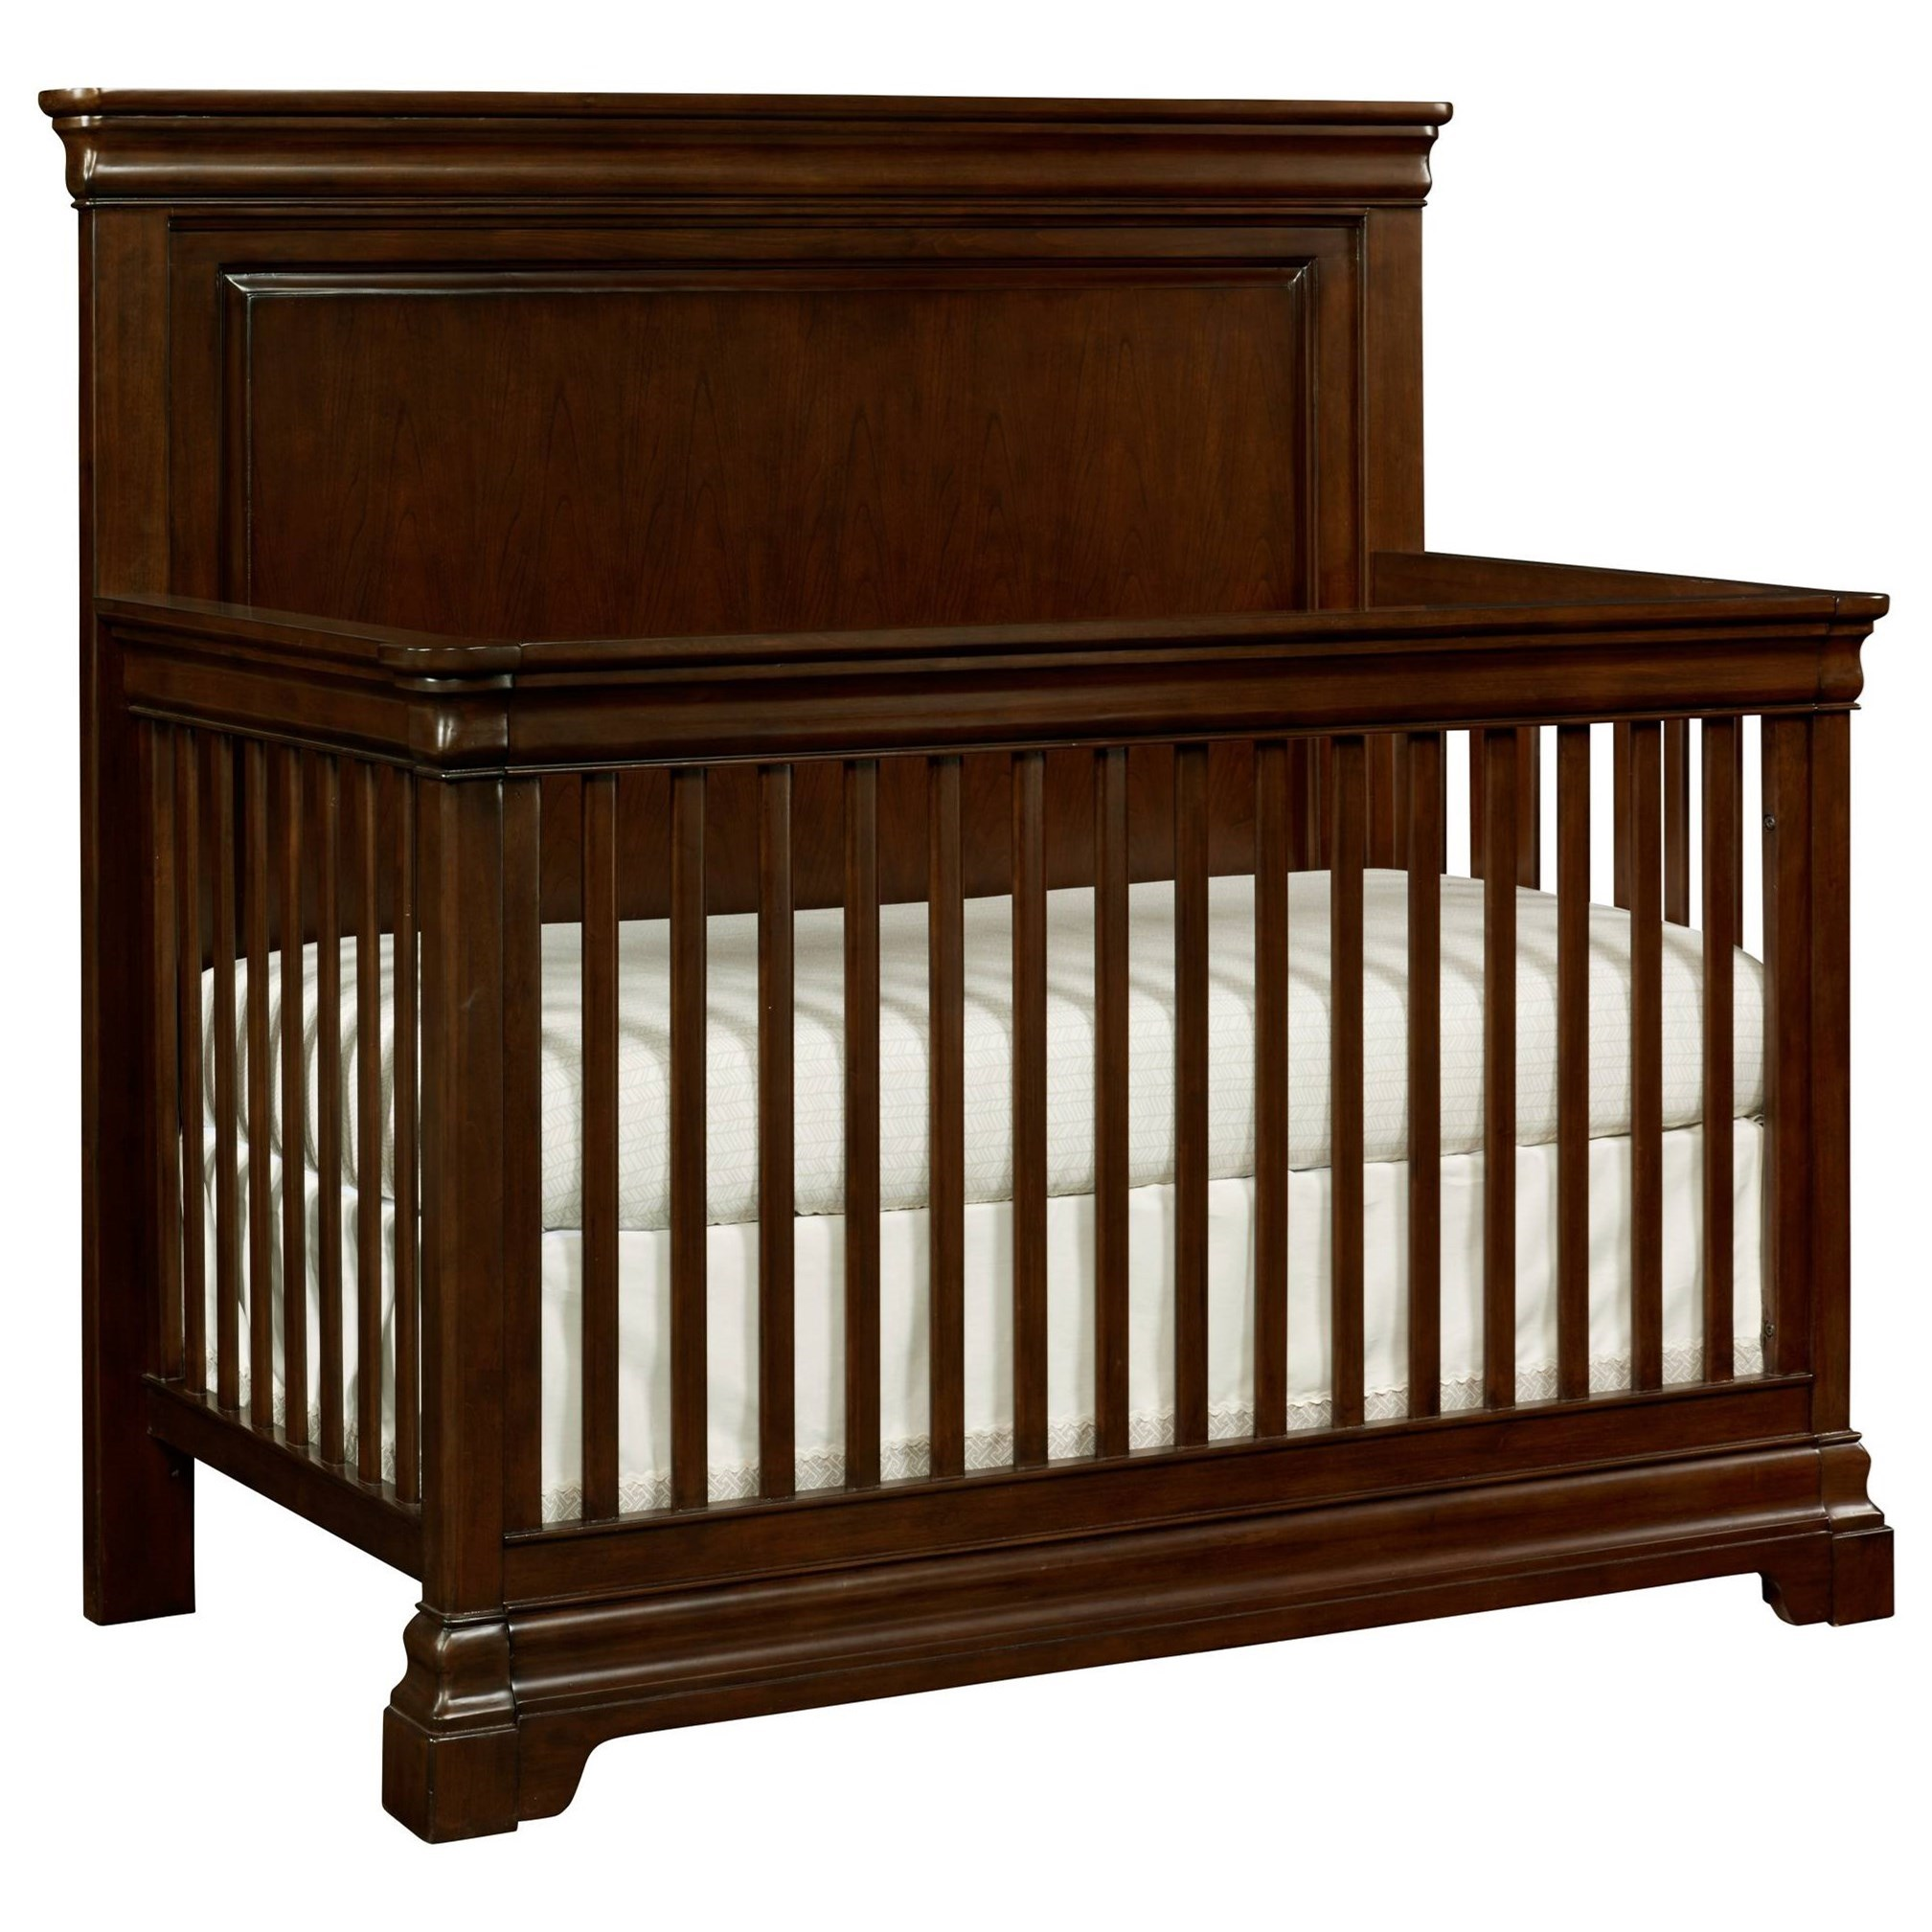 Stone & Leigh Furniture Teaberry Lane Built To Grow Crib - Item Number: 575-13-50